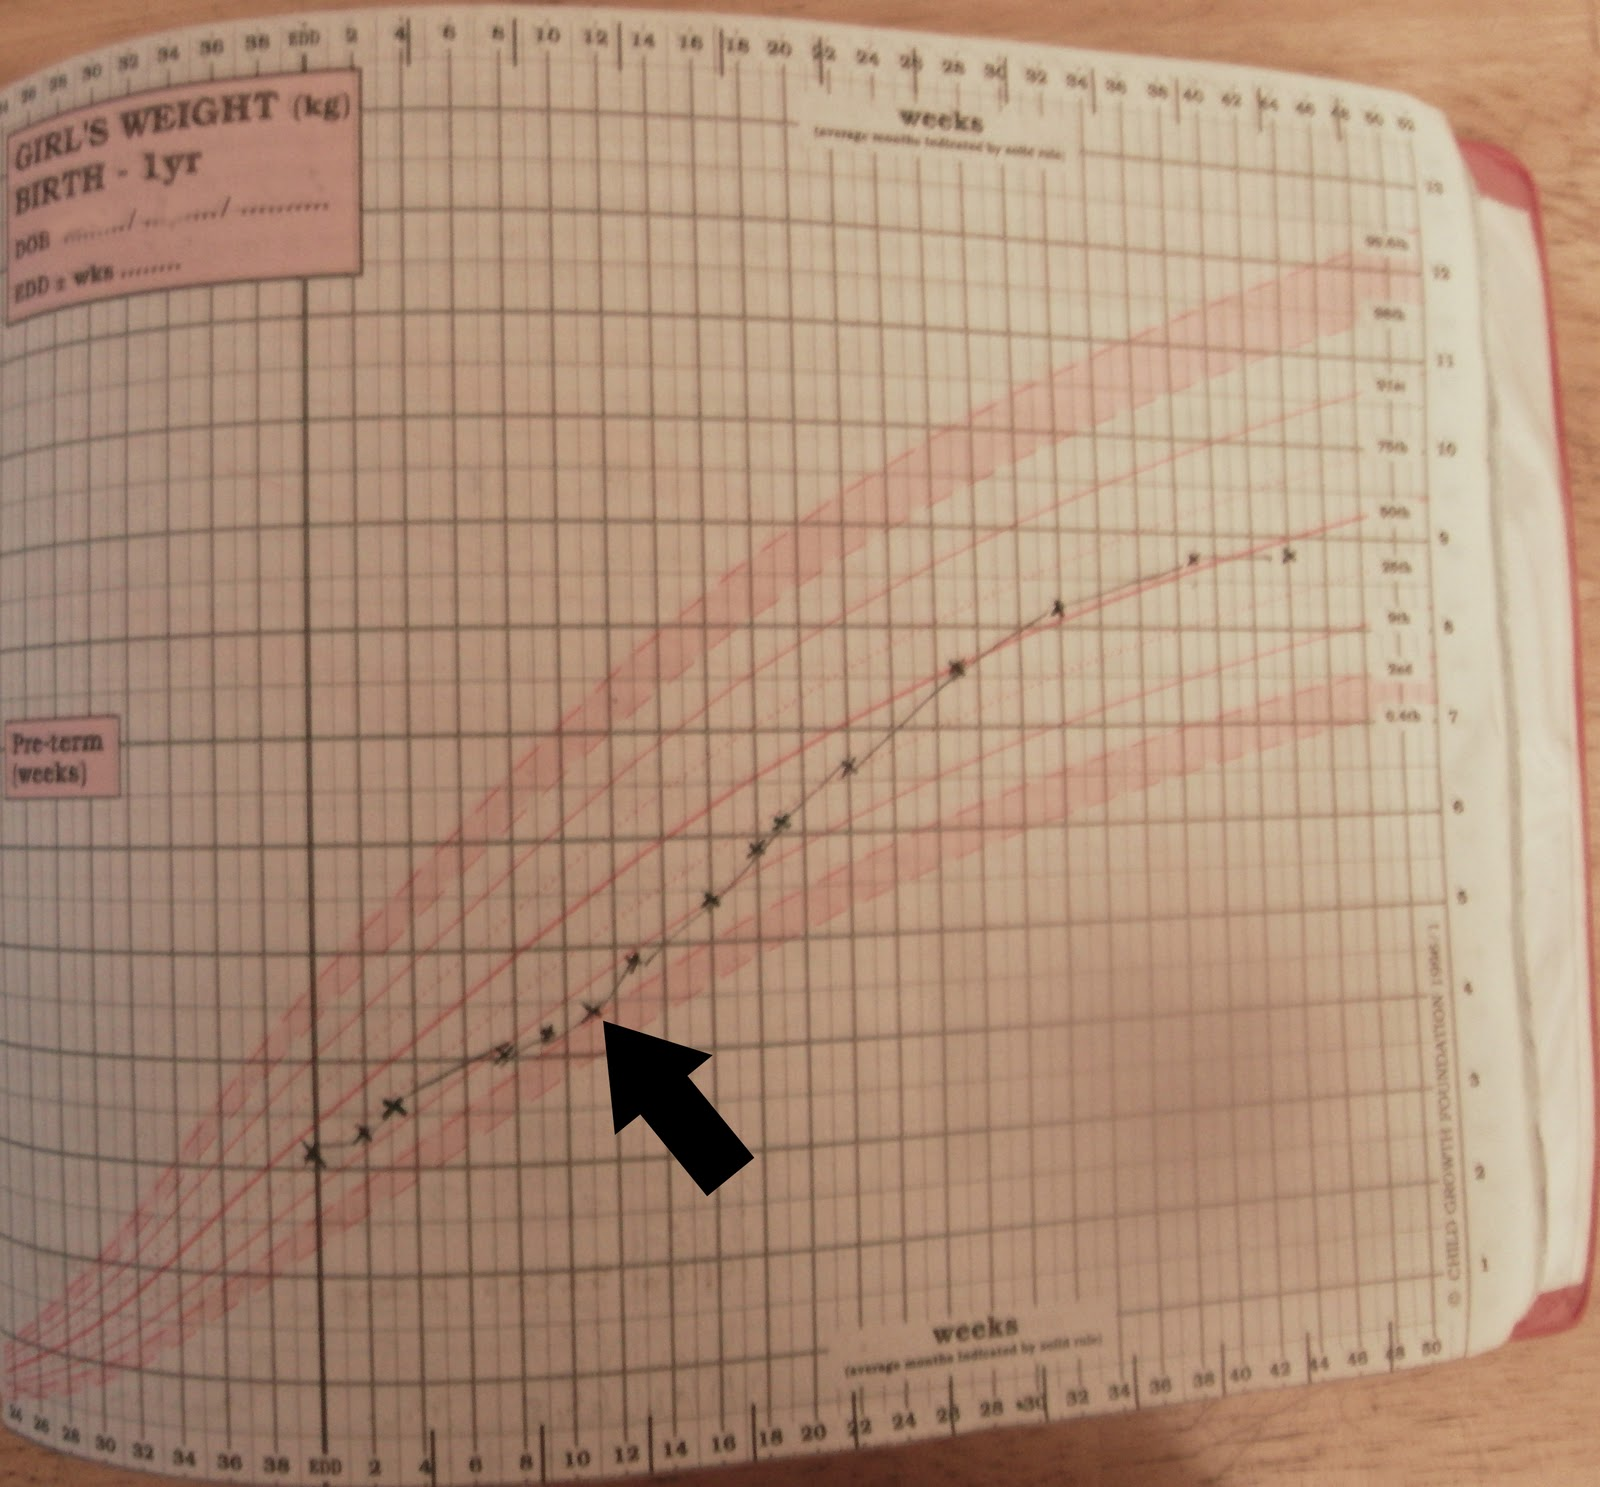 The funny shaped woman february 2011 the growth chart based on formula fed babies the black arrow indicates the point at which we introduced formula 11 weeks look at what happens to the nvjuhfo Images